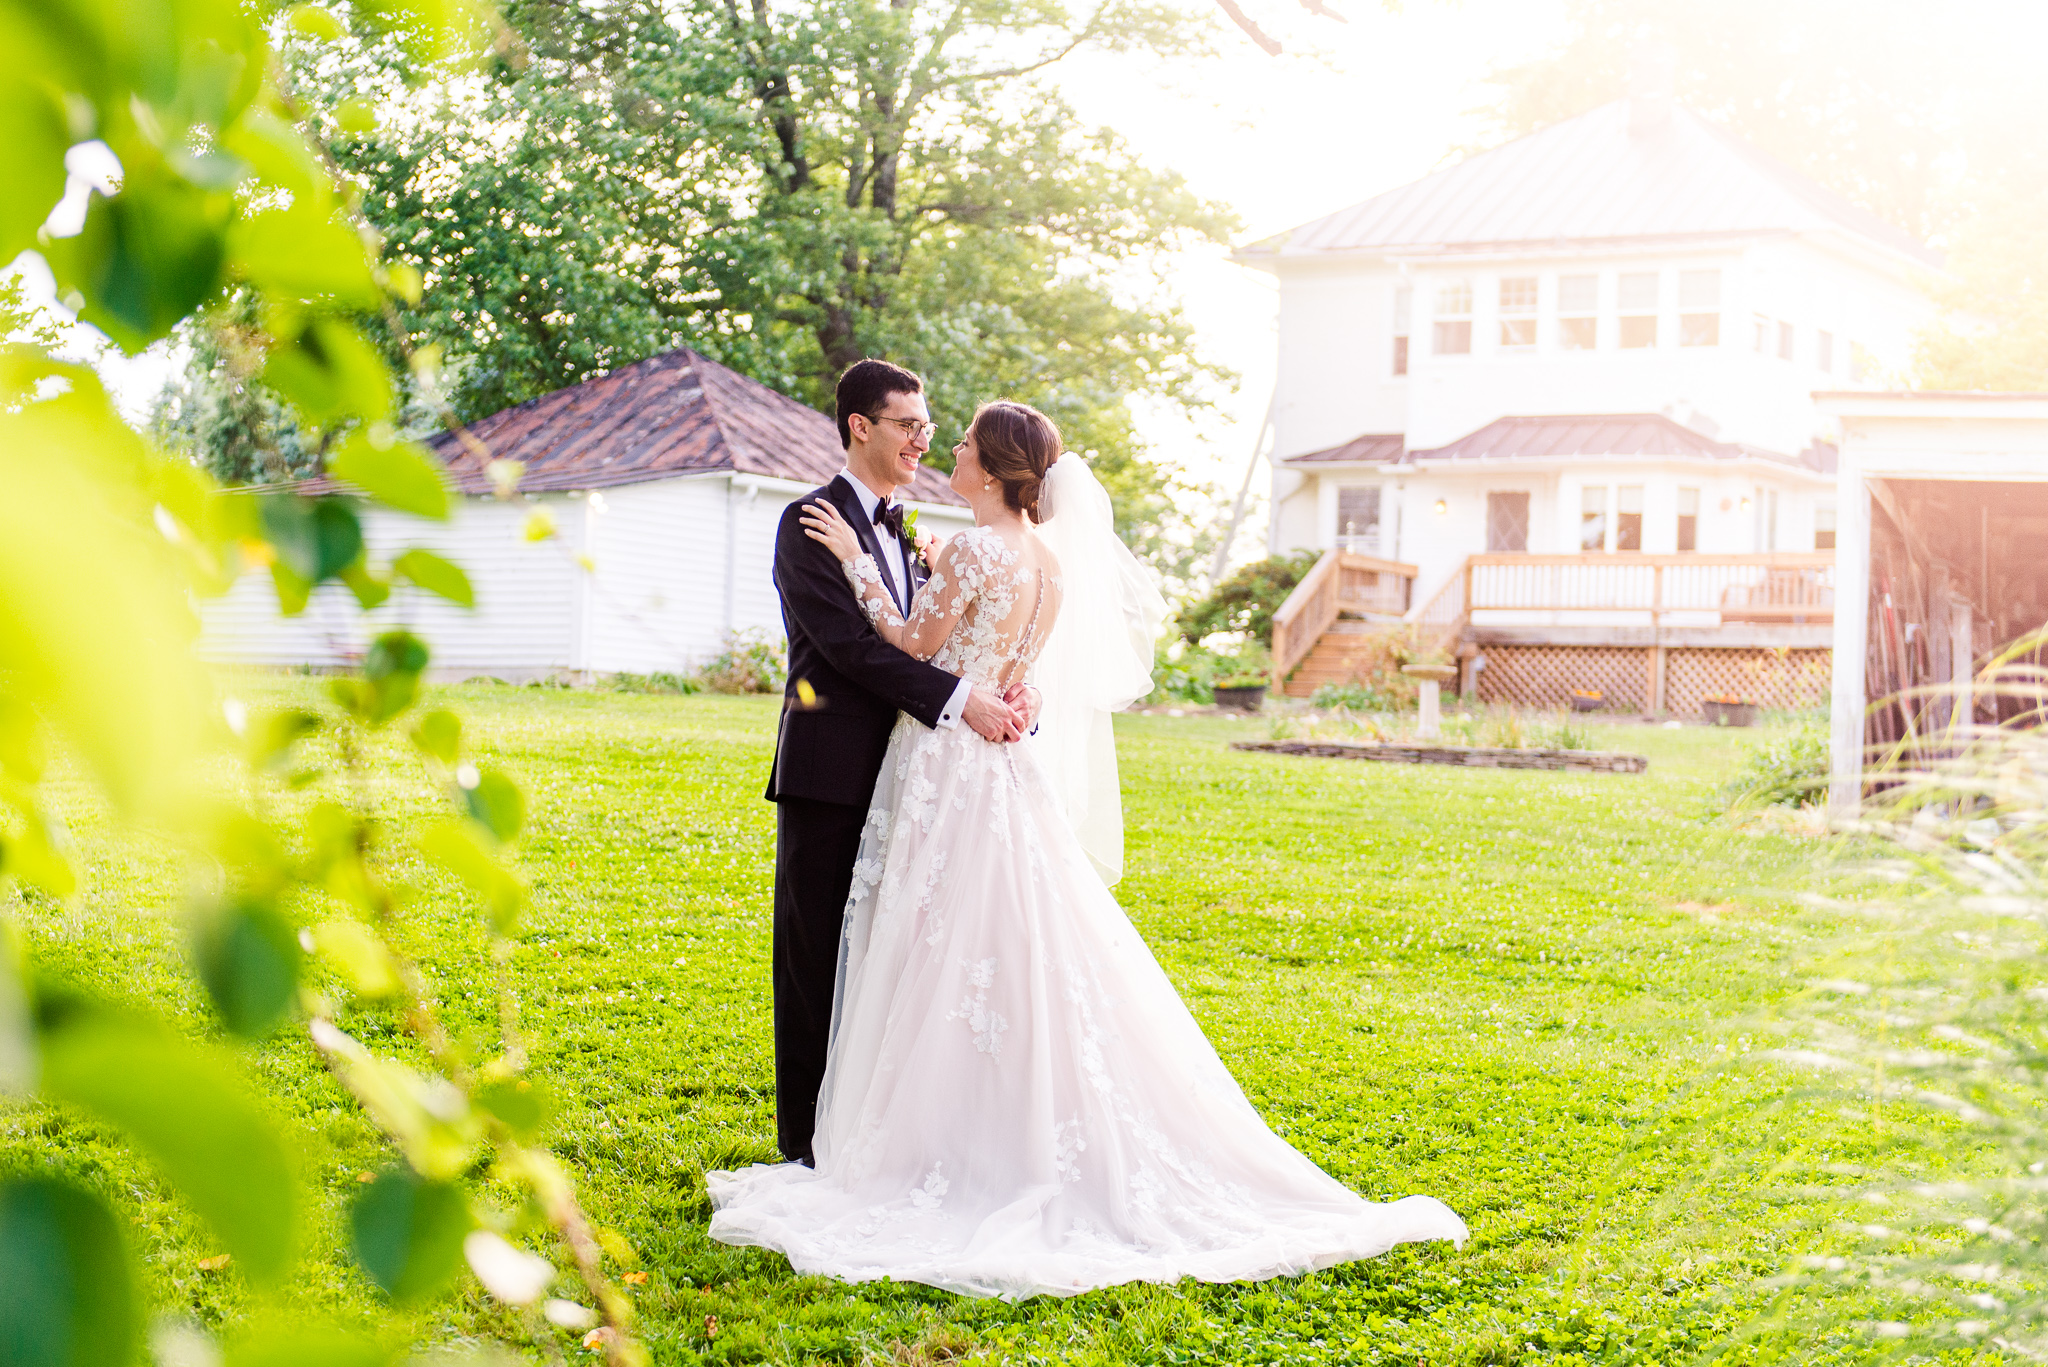 A bride and groom embrace during golden hour at The Barns at Hamilton Station Vineyard in Leesburg, Northern Virginia